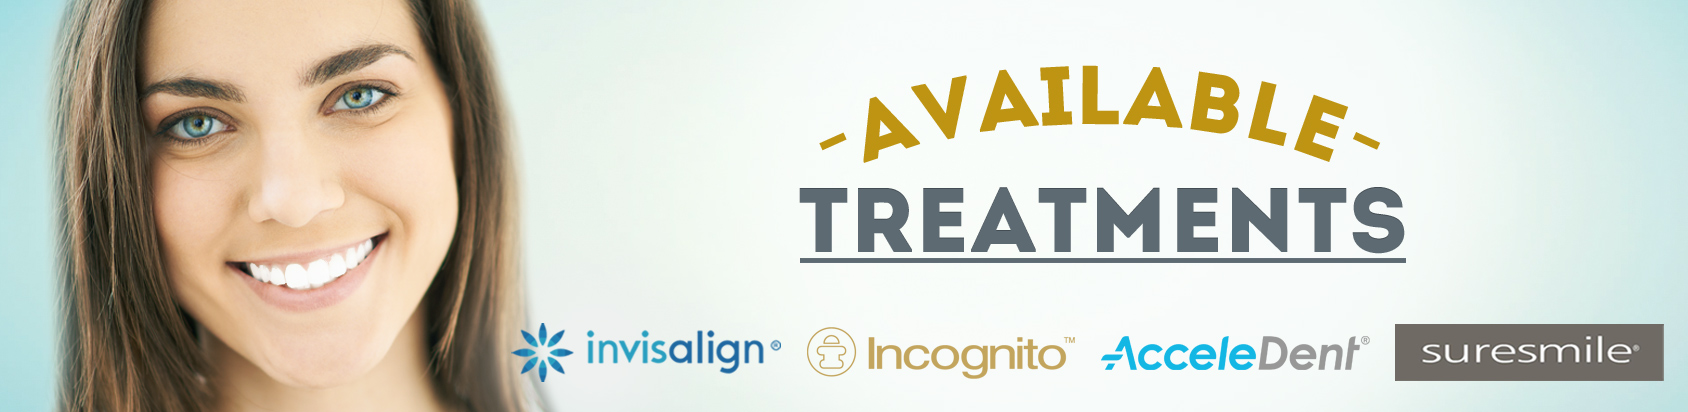 Available Treatment Banner 4